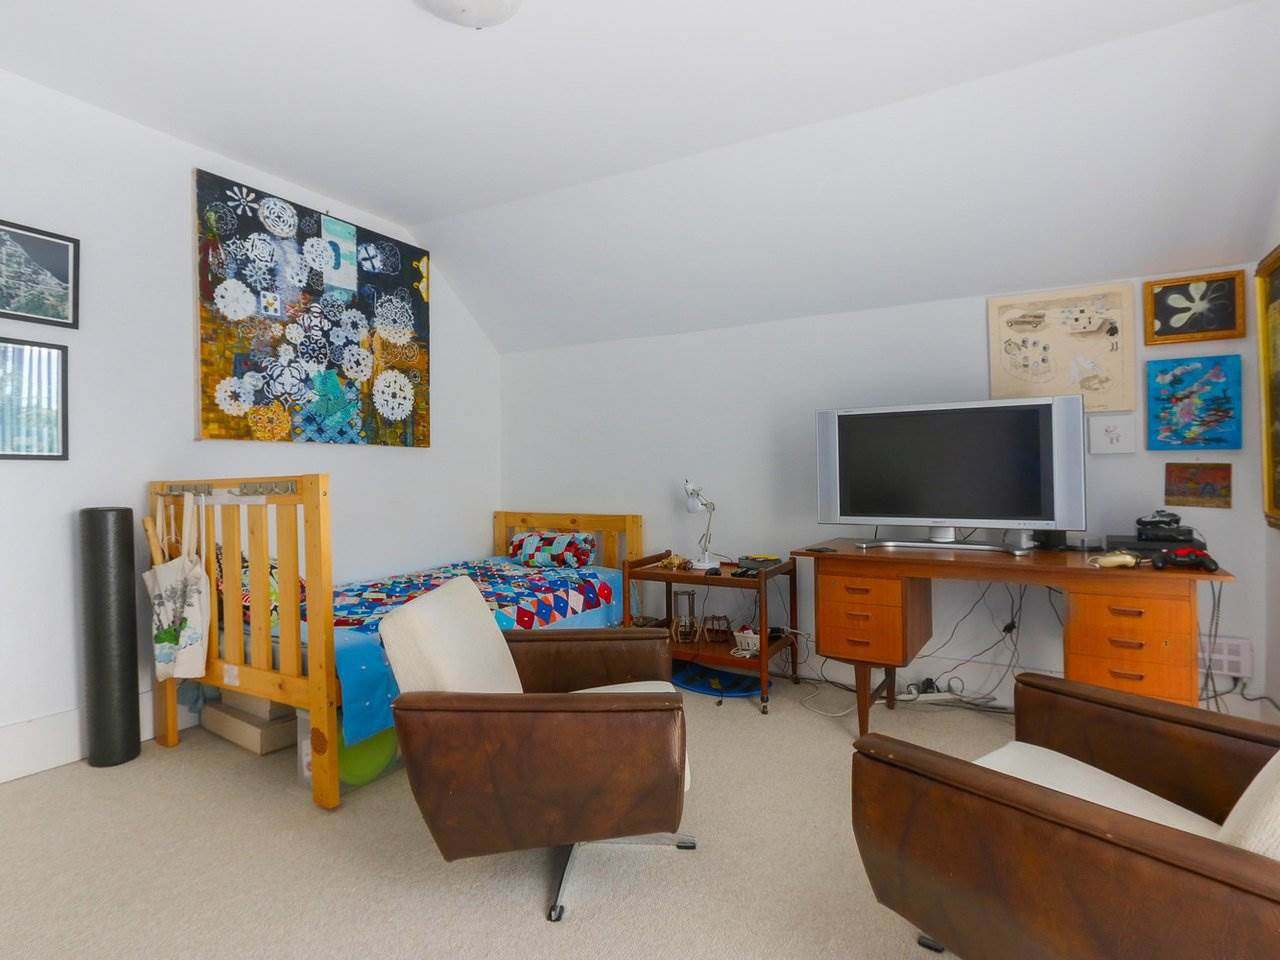 """Photo 13: Photos: 2610 W 10TH Avenue in Vancouver: Kitsilano House for sale in """"Kitsilano"""" (Vancouver West)  : MLS®# R2471992"""